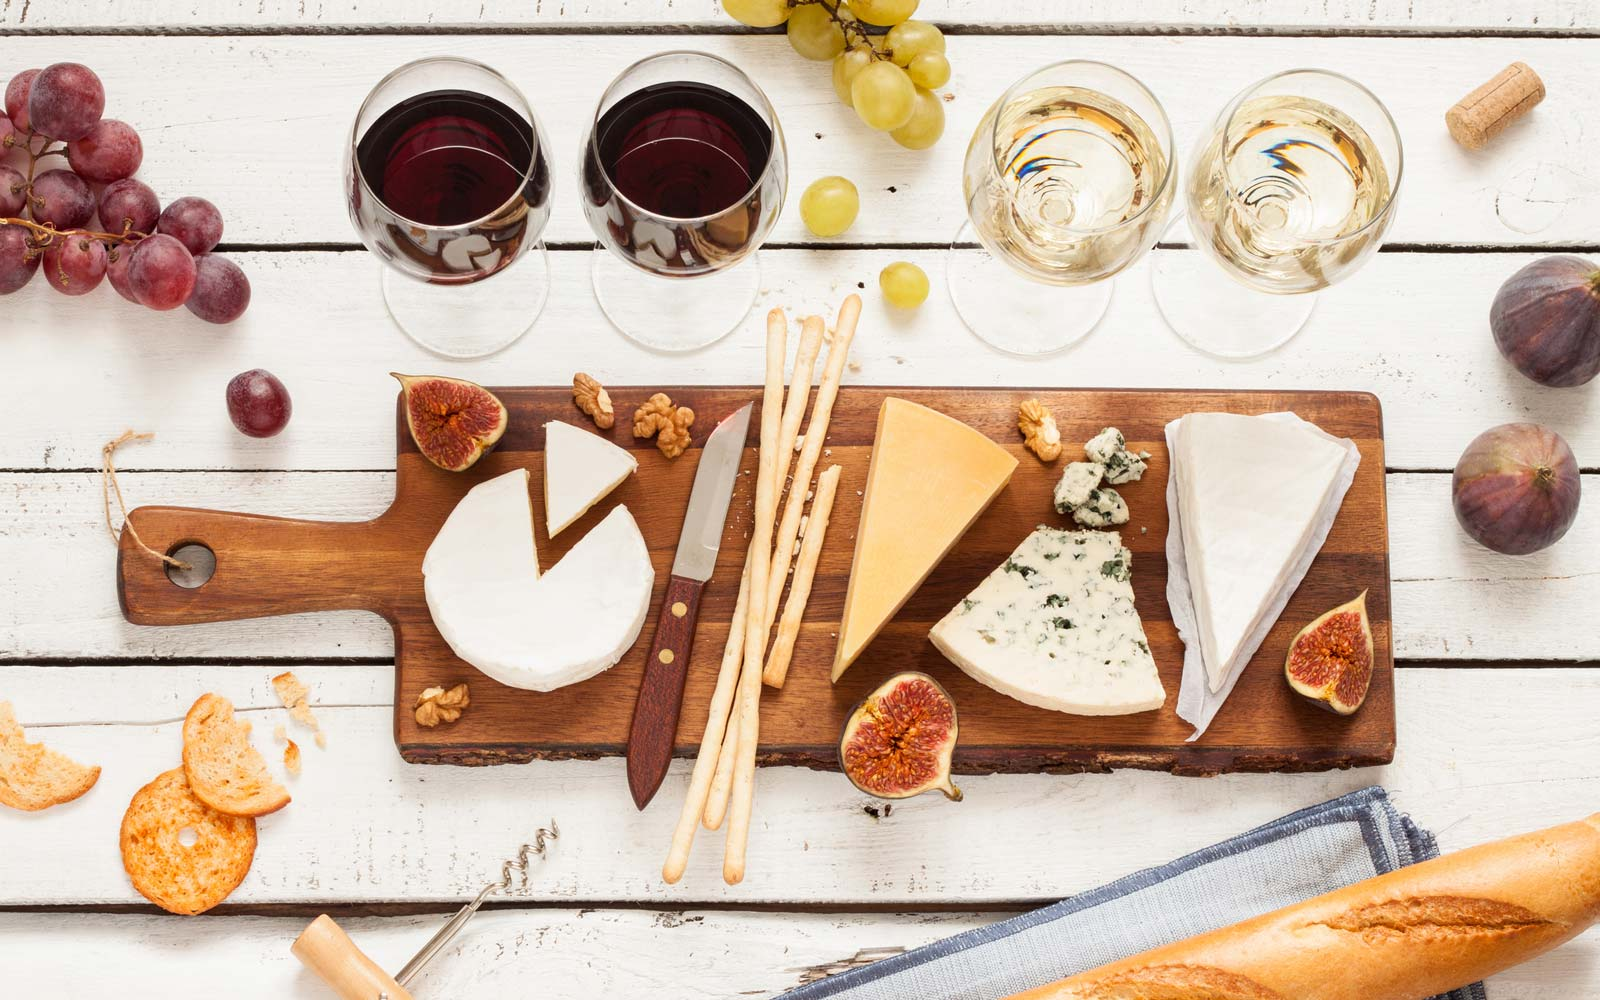 Costco Is Selling Packaged Cheese Flights for Under $20